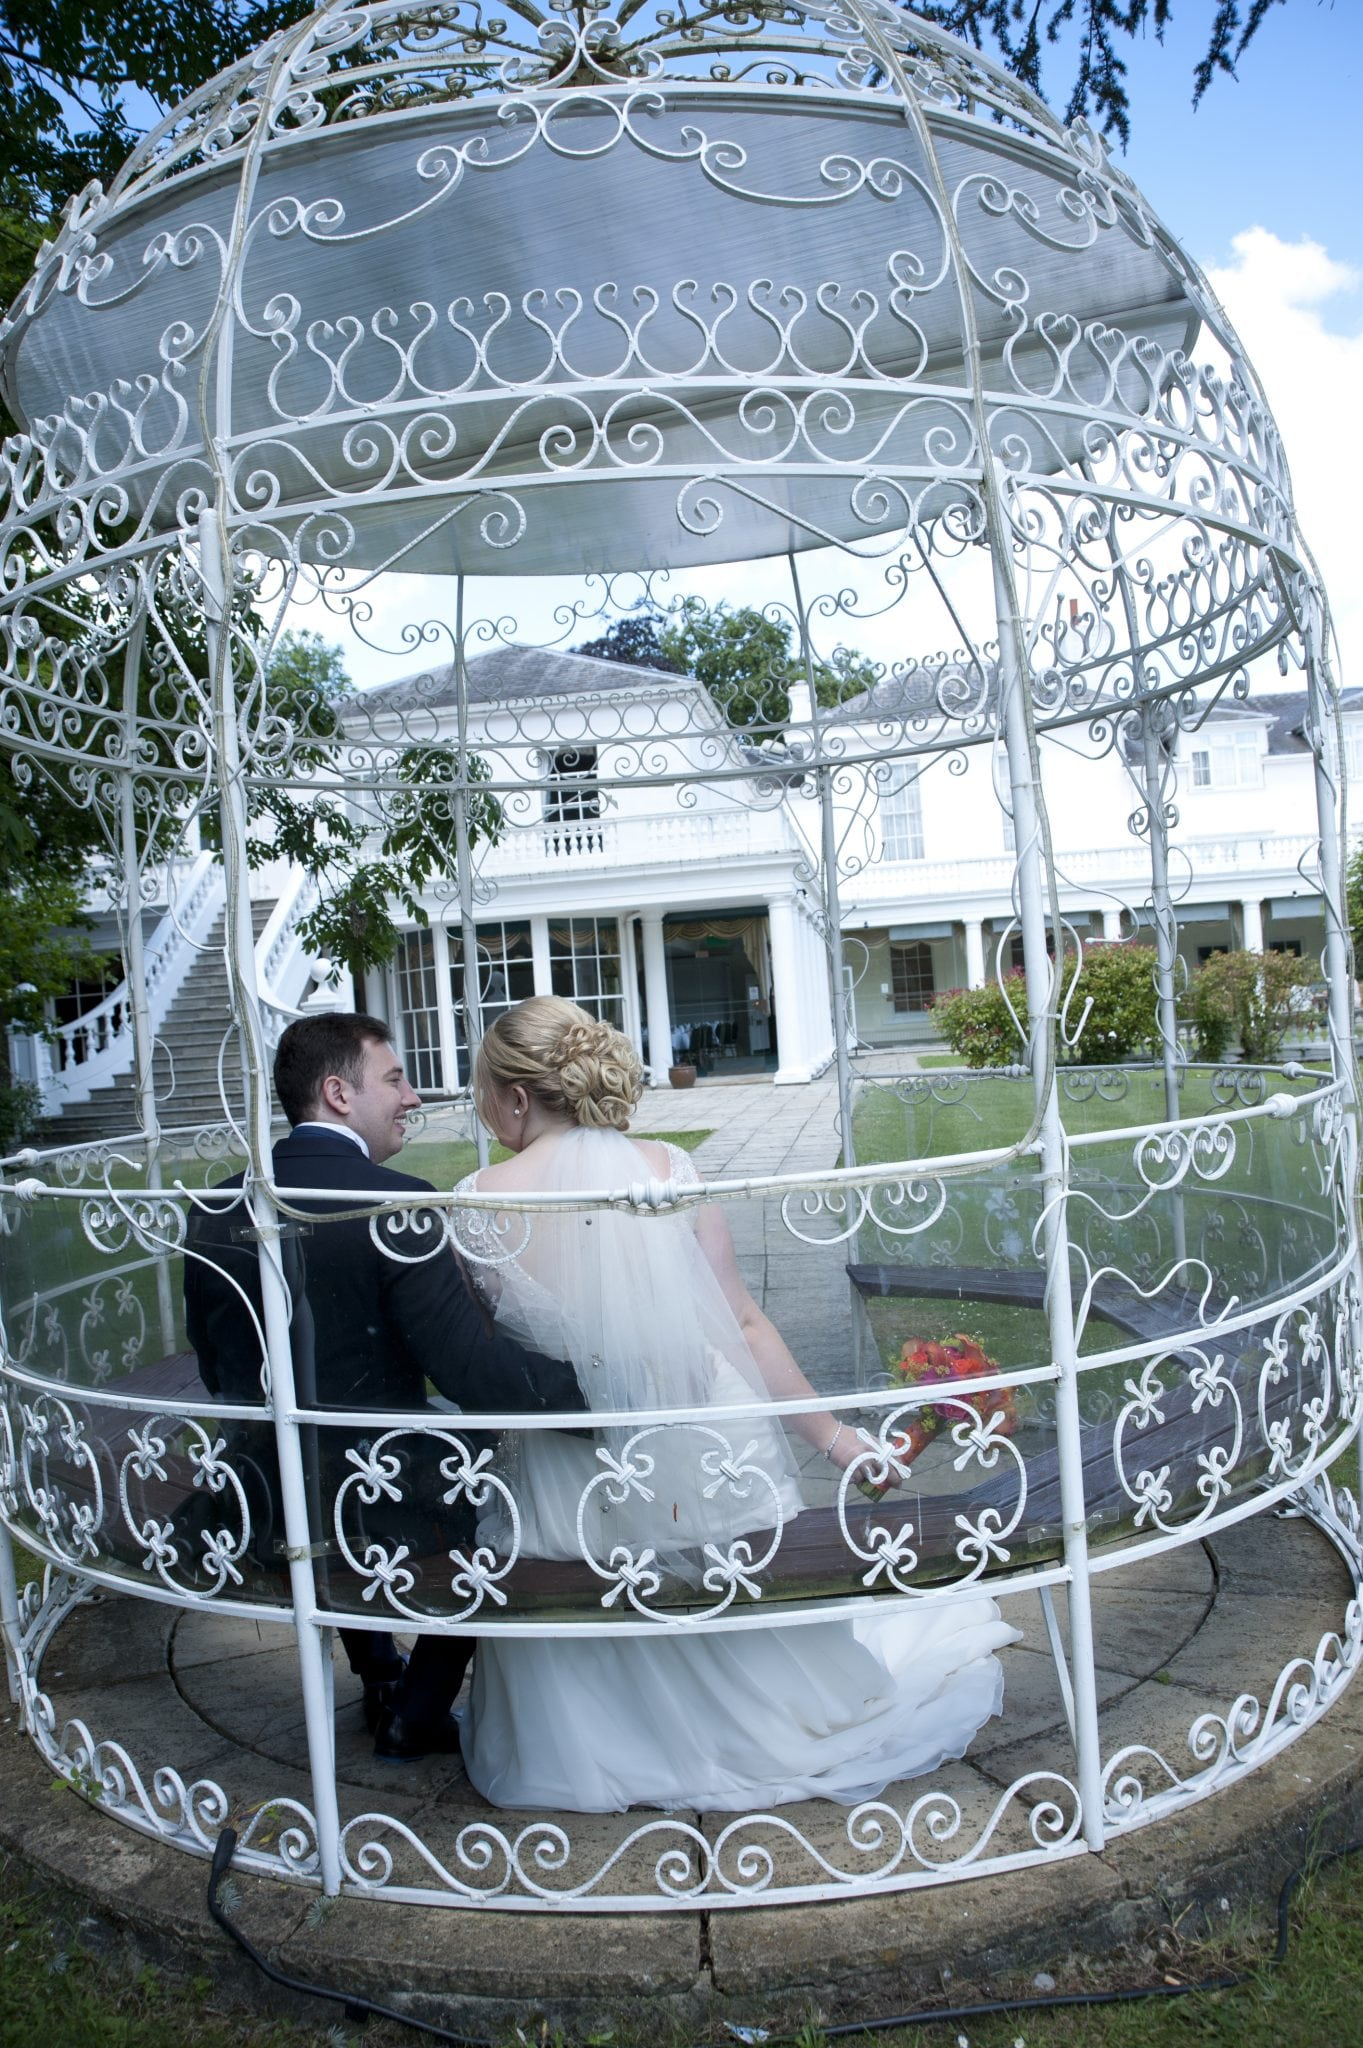 Manor of Groves - John Paul ODonnell Photography. Wedding venues